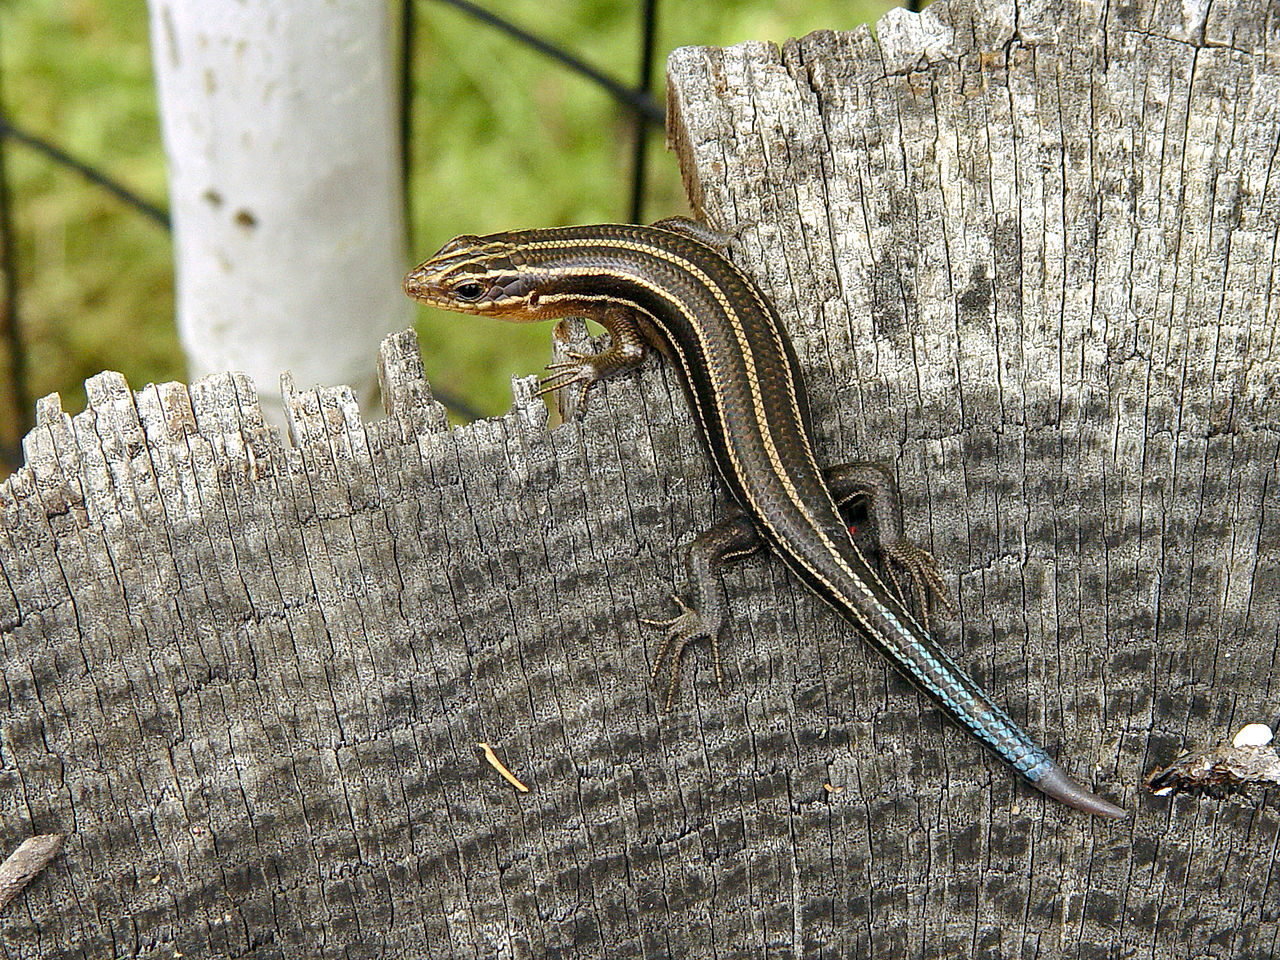 This lizard exhibits self-renewal by growing back its tail after losing it to a would-be predator. Photo by Thegreenj.